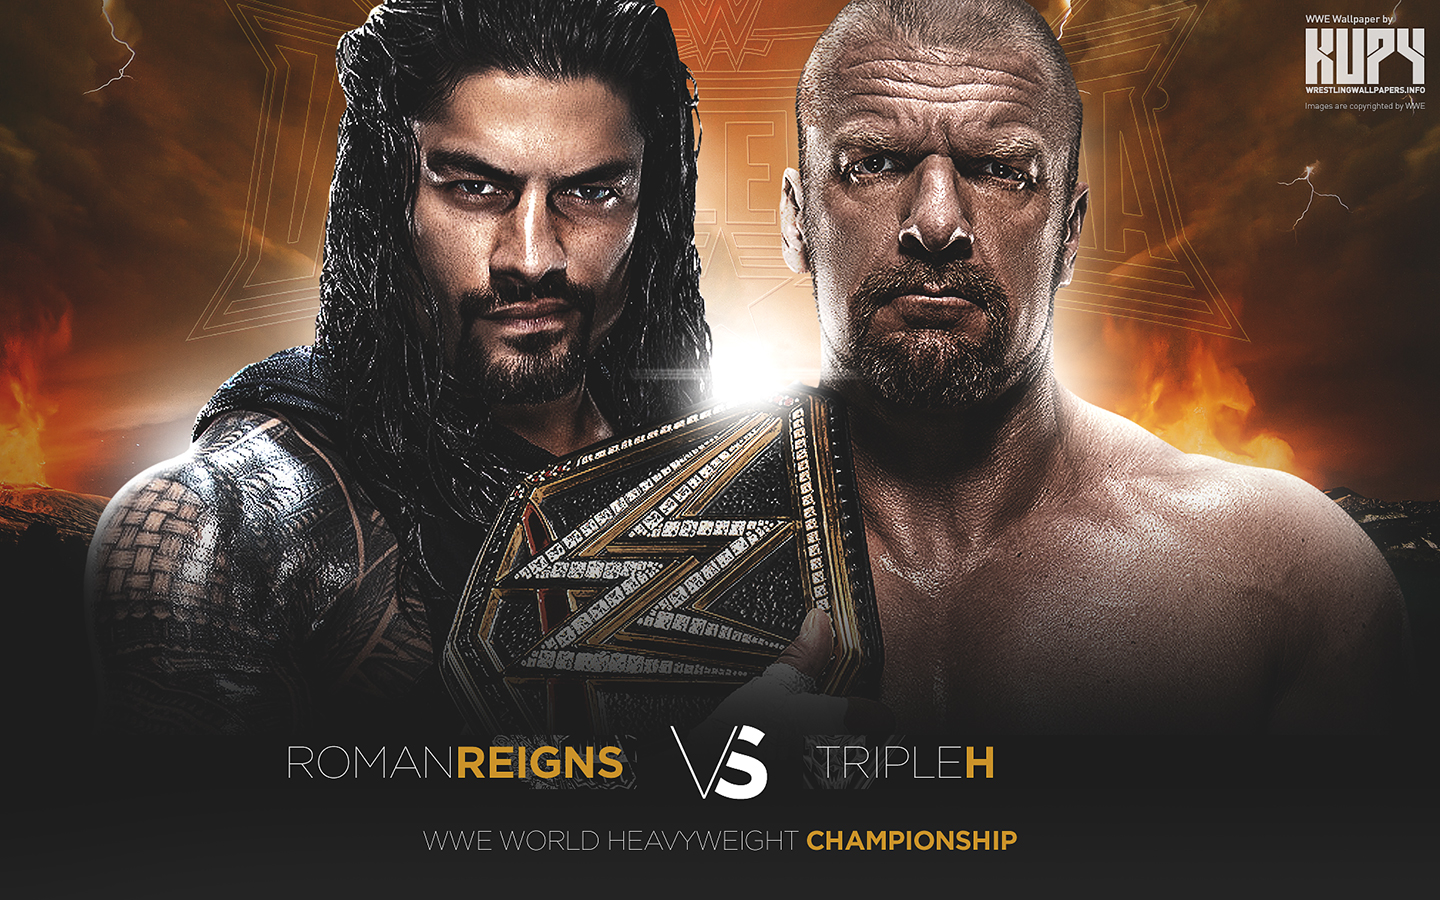 wrestlemania 32 triple h vs roman reigns wwe wallpaper